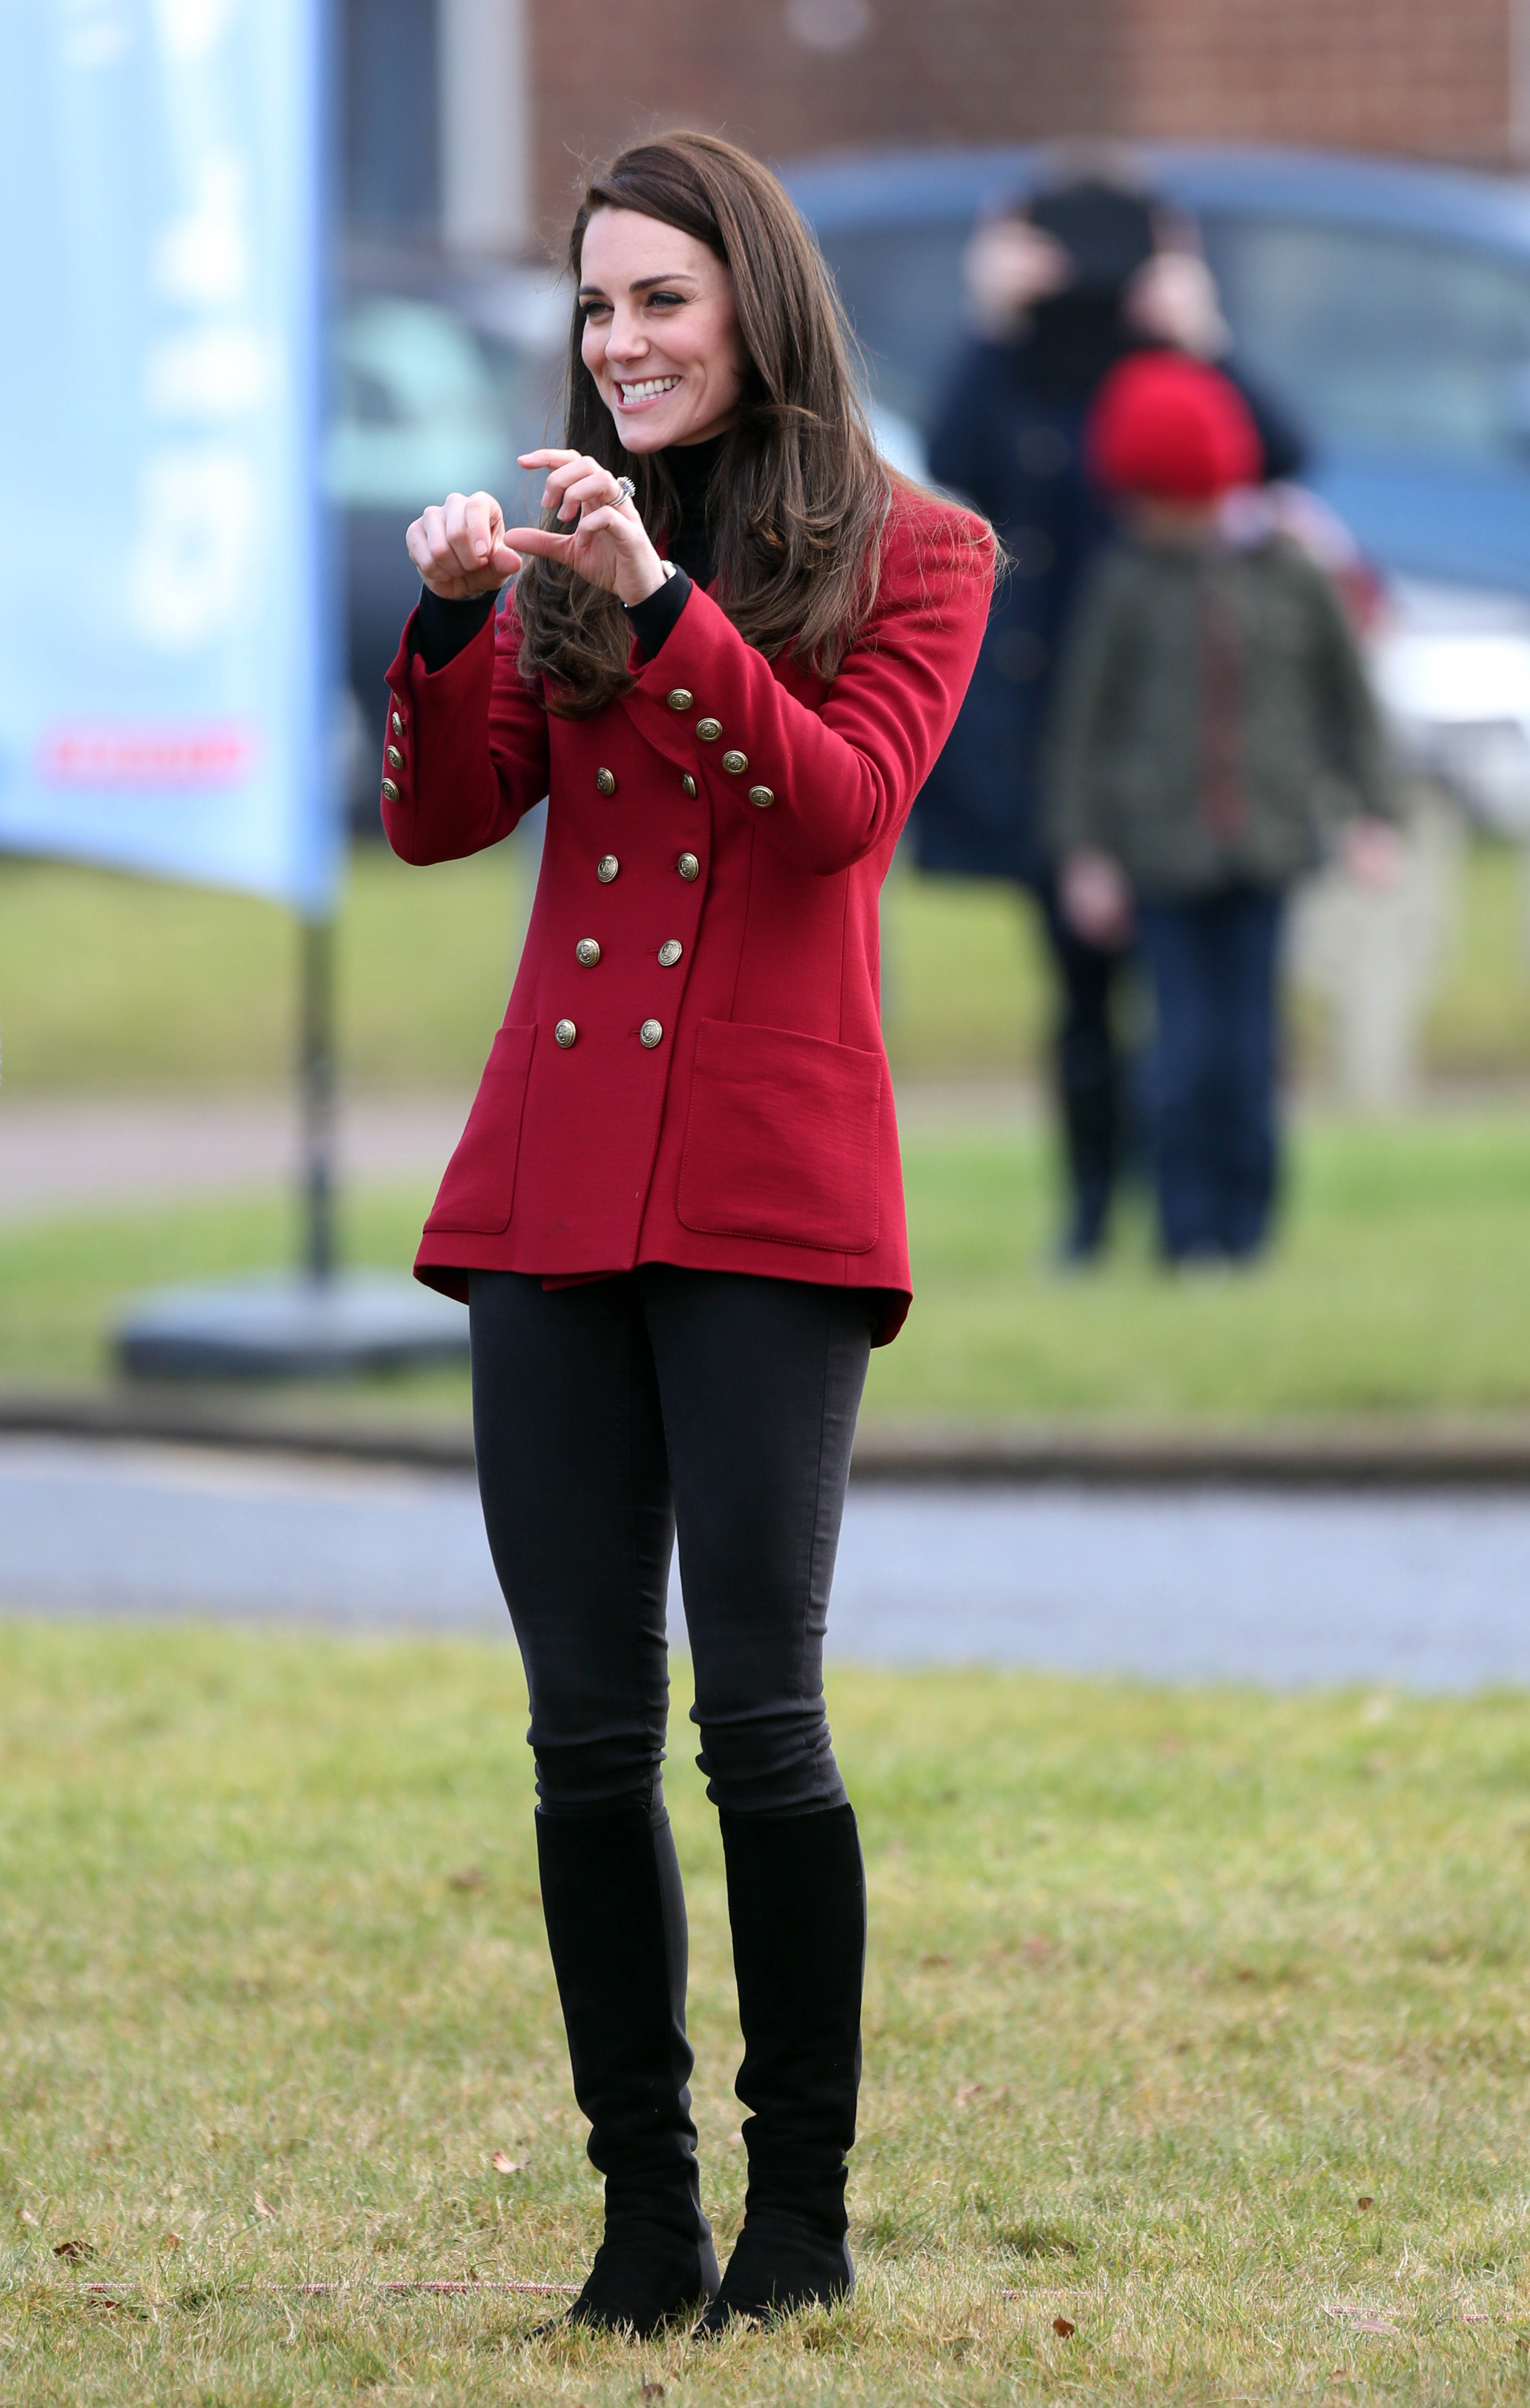 Photo by: KGC-22/STAR MAX/IPx 2/14/17 The Duchess of Cambridge visits RAF Wittering in Cambridgeshire to meet with local air cadets. Her Royal Highness became Royal Patron and Honorary Air Commandant of the Air Cadet Organisation, in December 2015.   Her Royal Highness joined the cadets as they viewed a Tutor aircraft, and participated in a personal development training session. The Duchess also had the chance to fly a flight simulator while there.